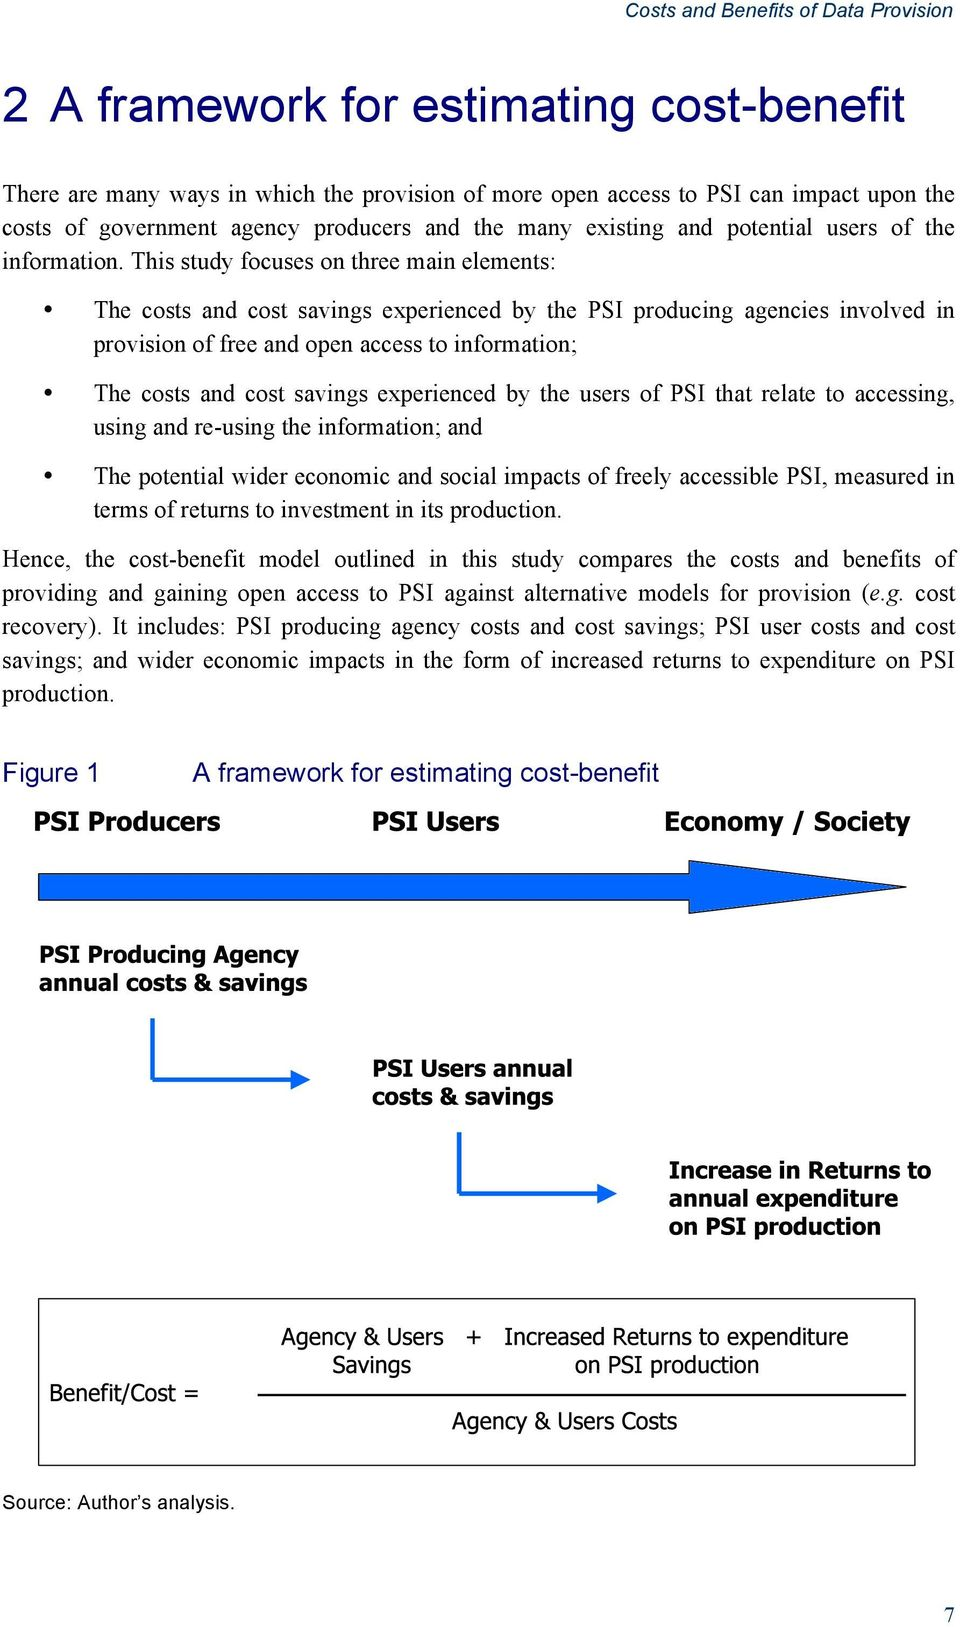 This study focuses on three main elements: The costs and cost savings experienced by the PSI producing agencies involved in provision of free and open access to information; The costs and cost